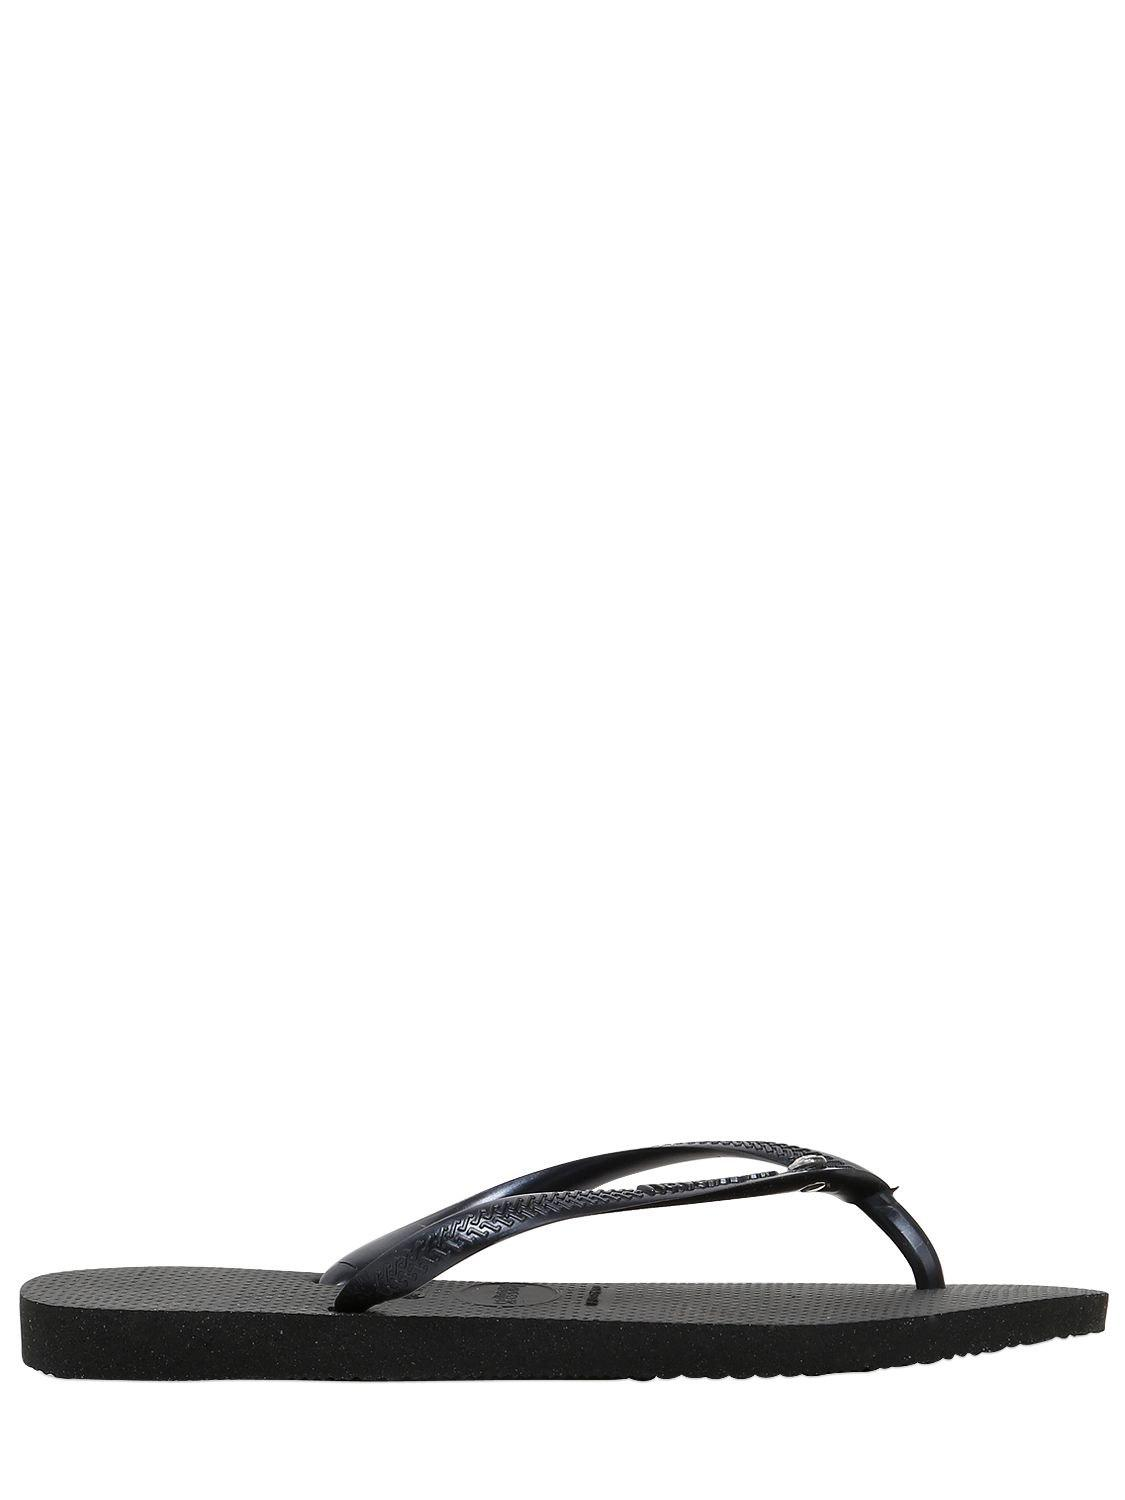 0410d36ec380 Havaianas Slim Swarovski Crystal Rubber Flip Flops in Black - Save ...